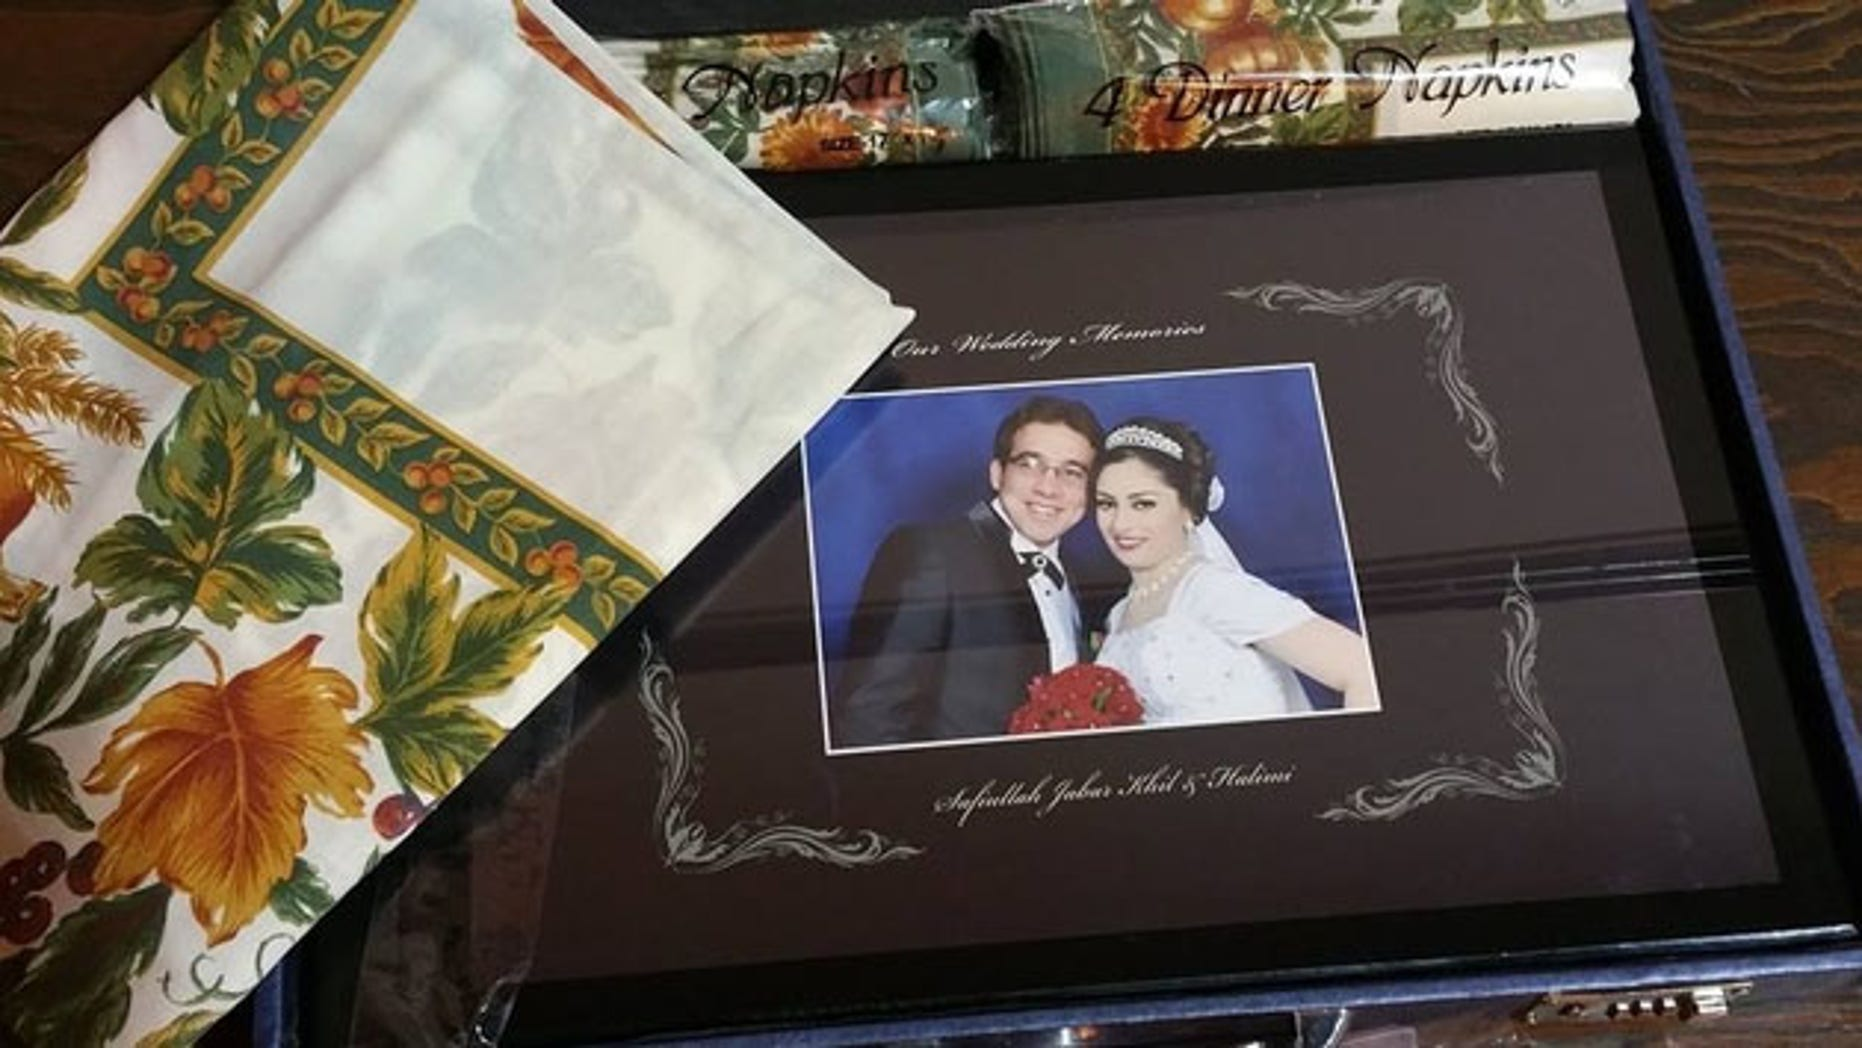 After Los Angeles Airport Police shared a post on Facebook of the photo album, the happy couple was reunited with their wedding photos.